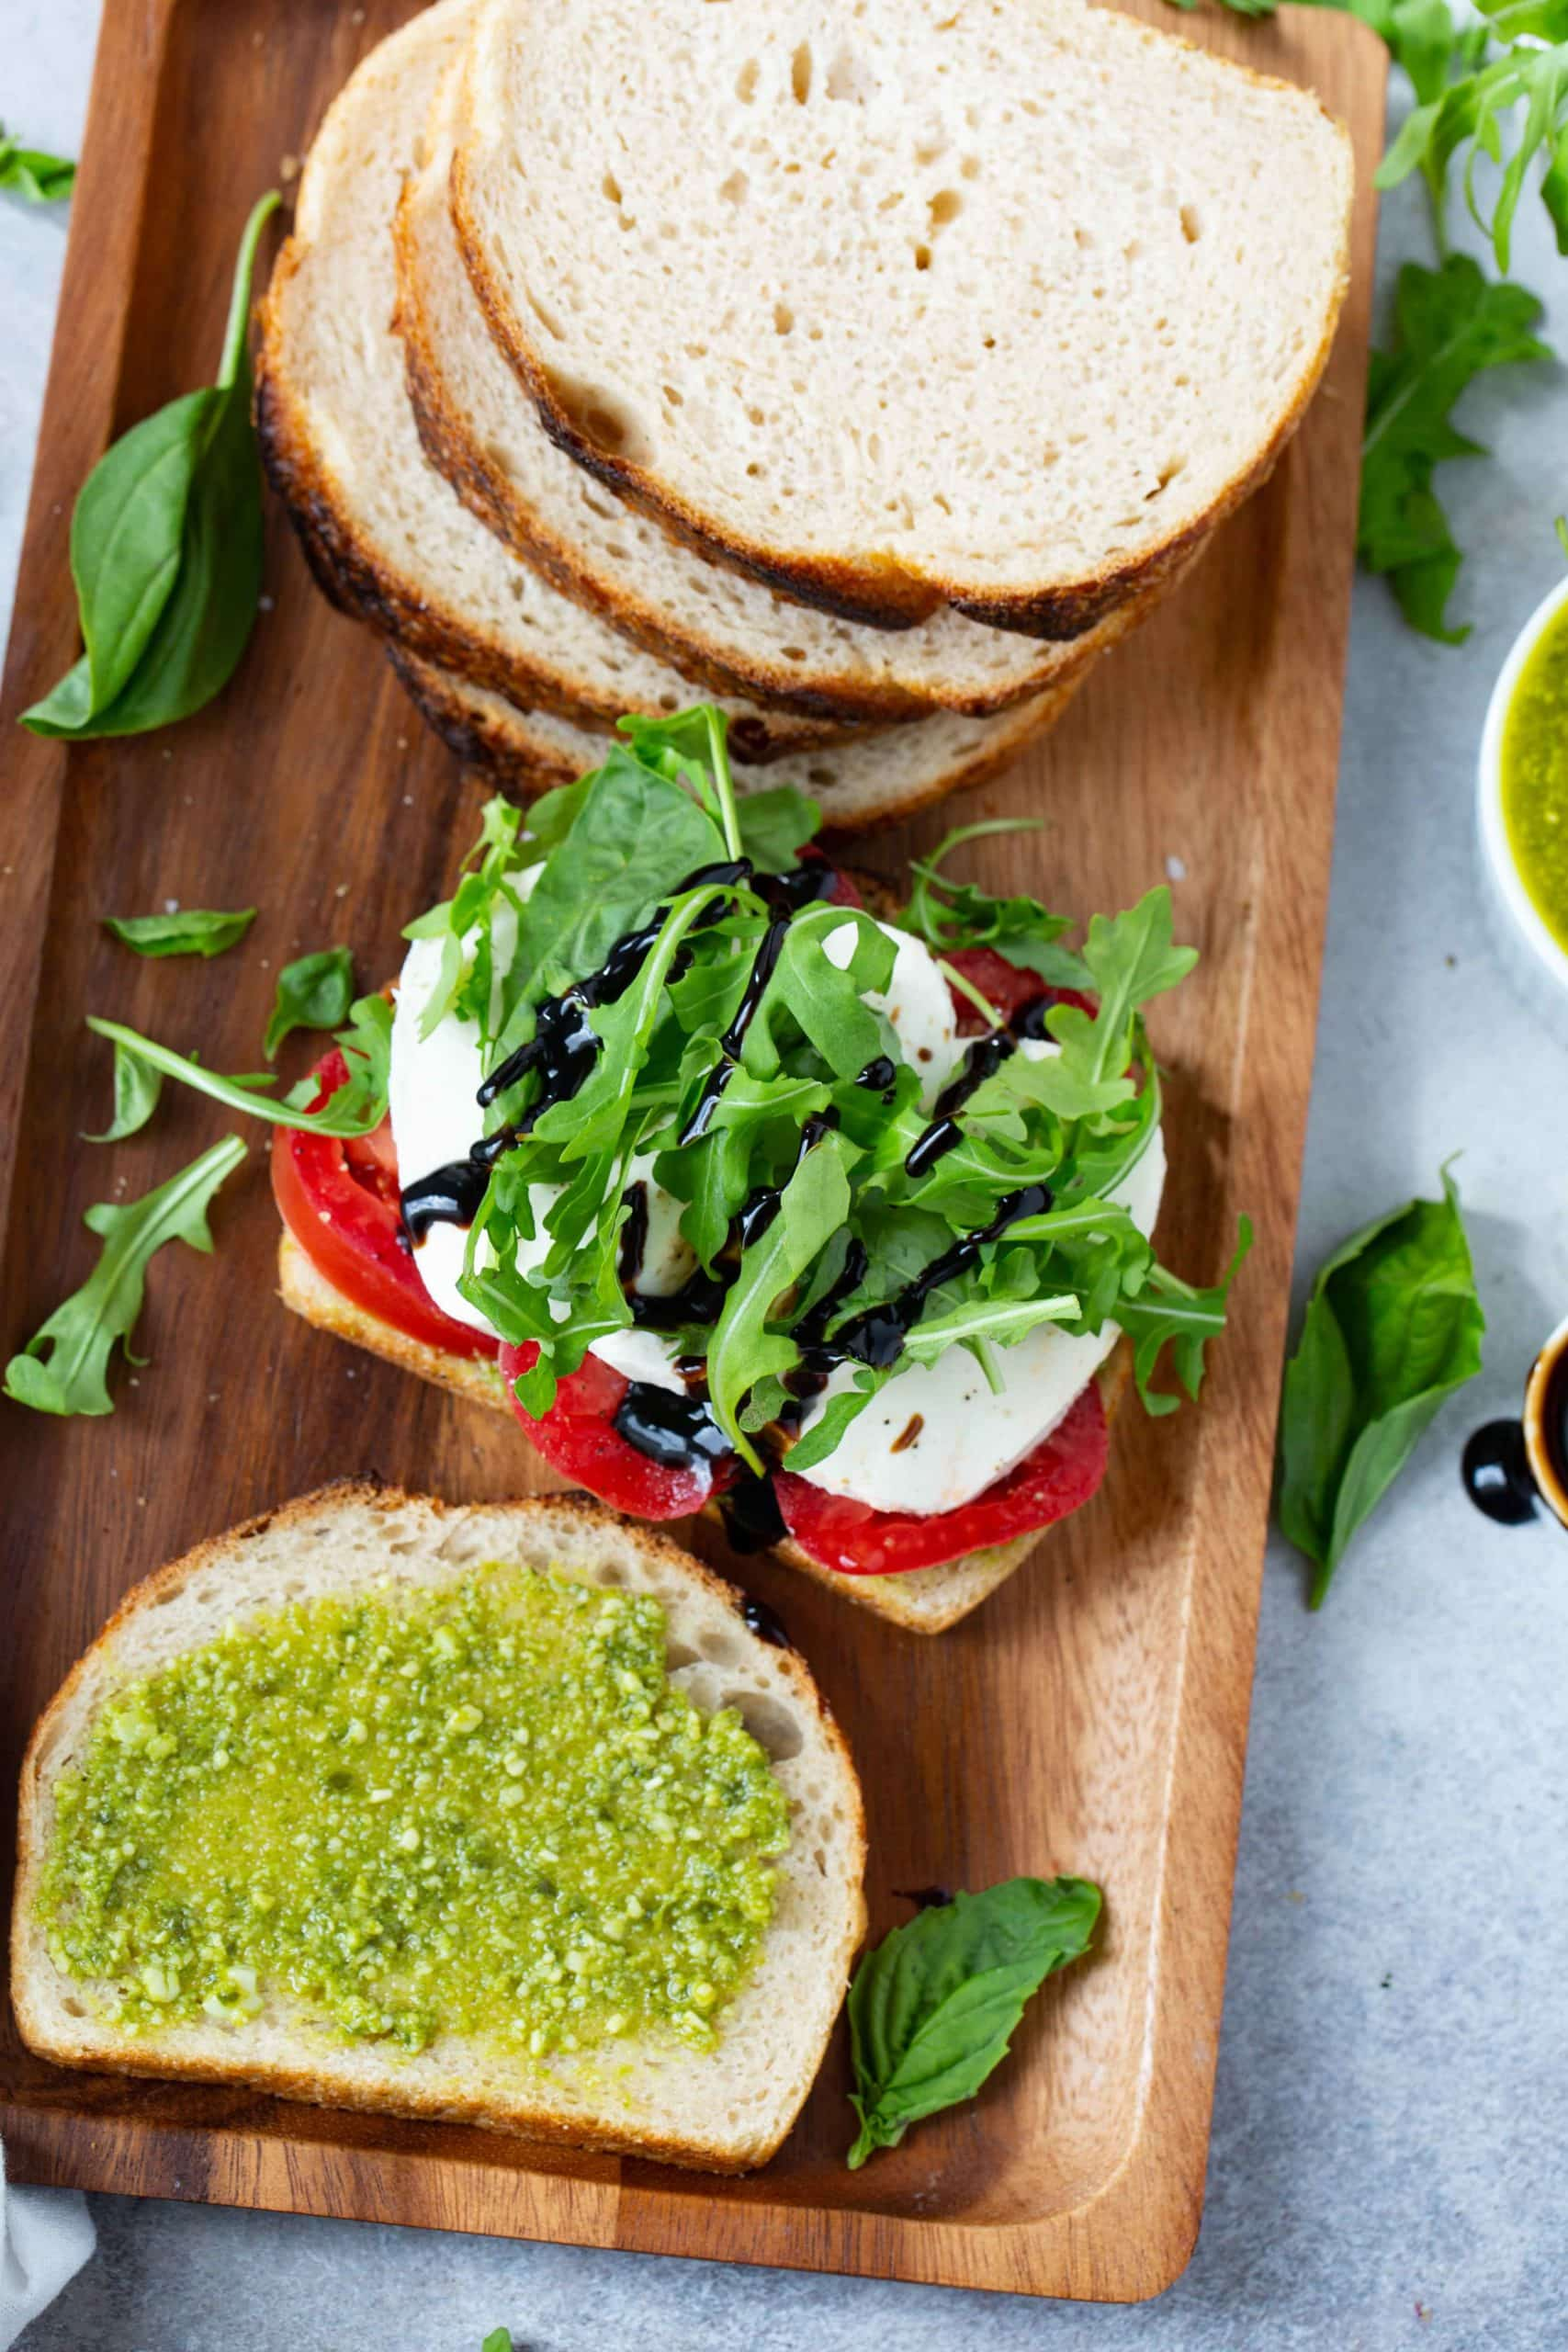 A wooden tray with sliced bread, a slice of bread with tomatoes, mozzarella cheese, and arugula on top. There is another slice of bread laying next to it that has been spread with pesto. Arugula and basil leaves lay on the tray and table next to the tray.